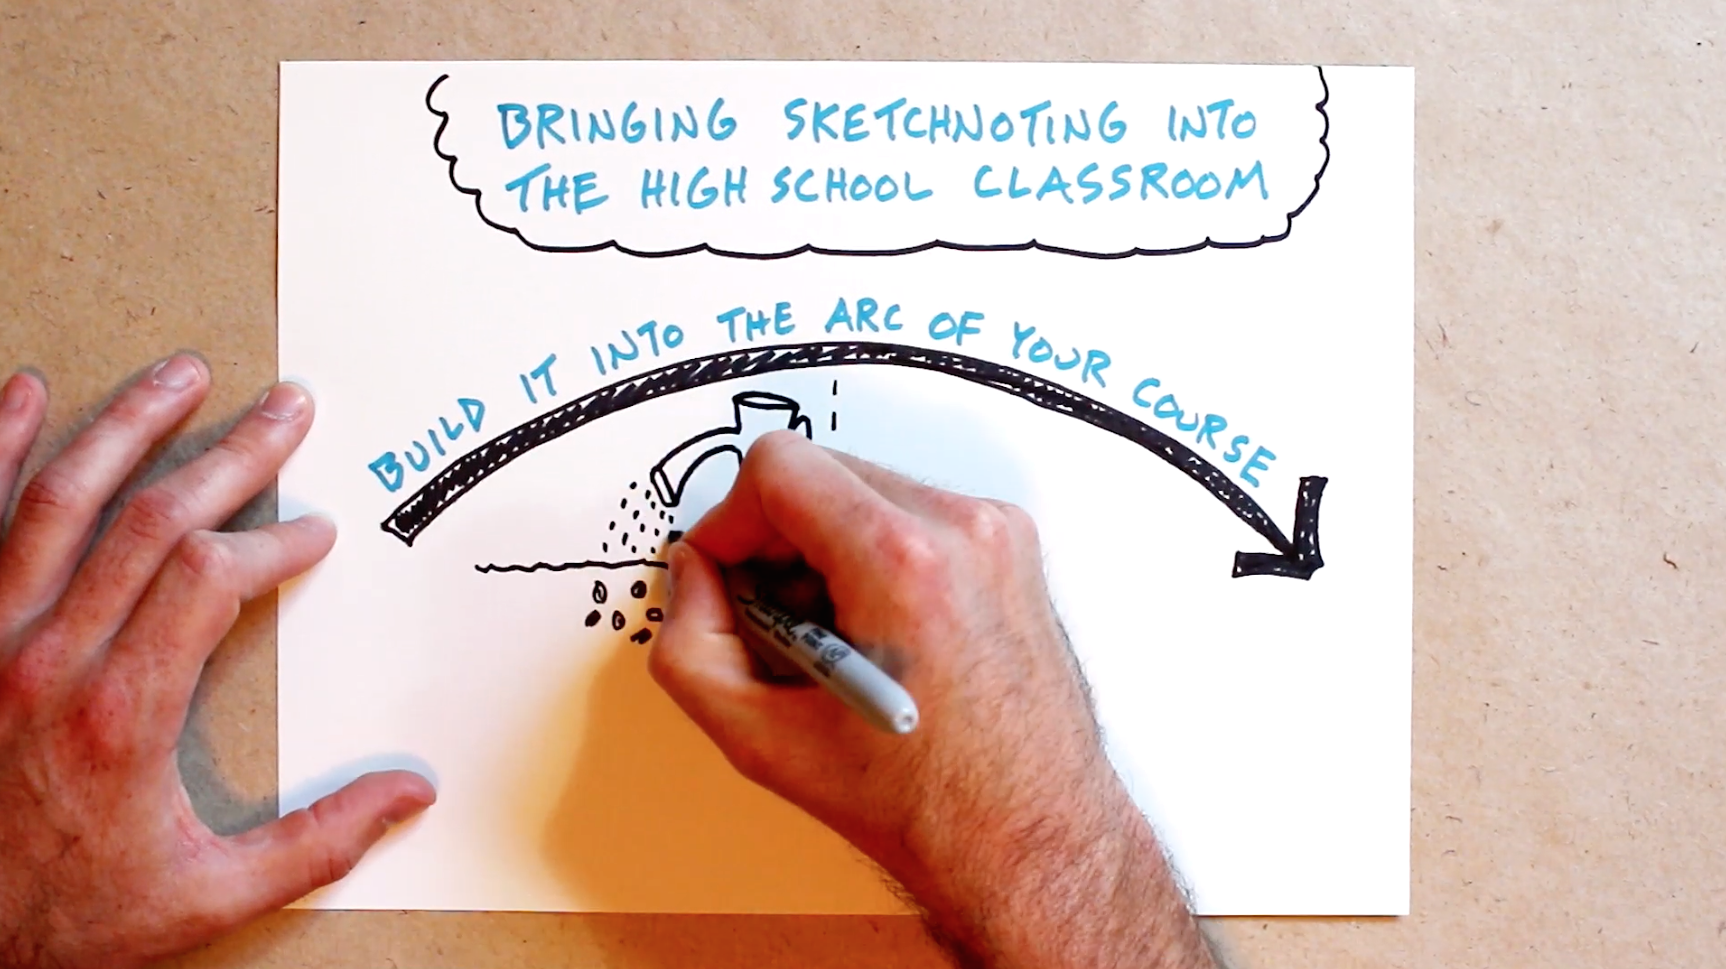 Bringing Sketchnoting Into The High School Classroom - Verbal To Visual - Doug Neill - doodling, note-taking, visual notes, teaching